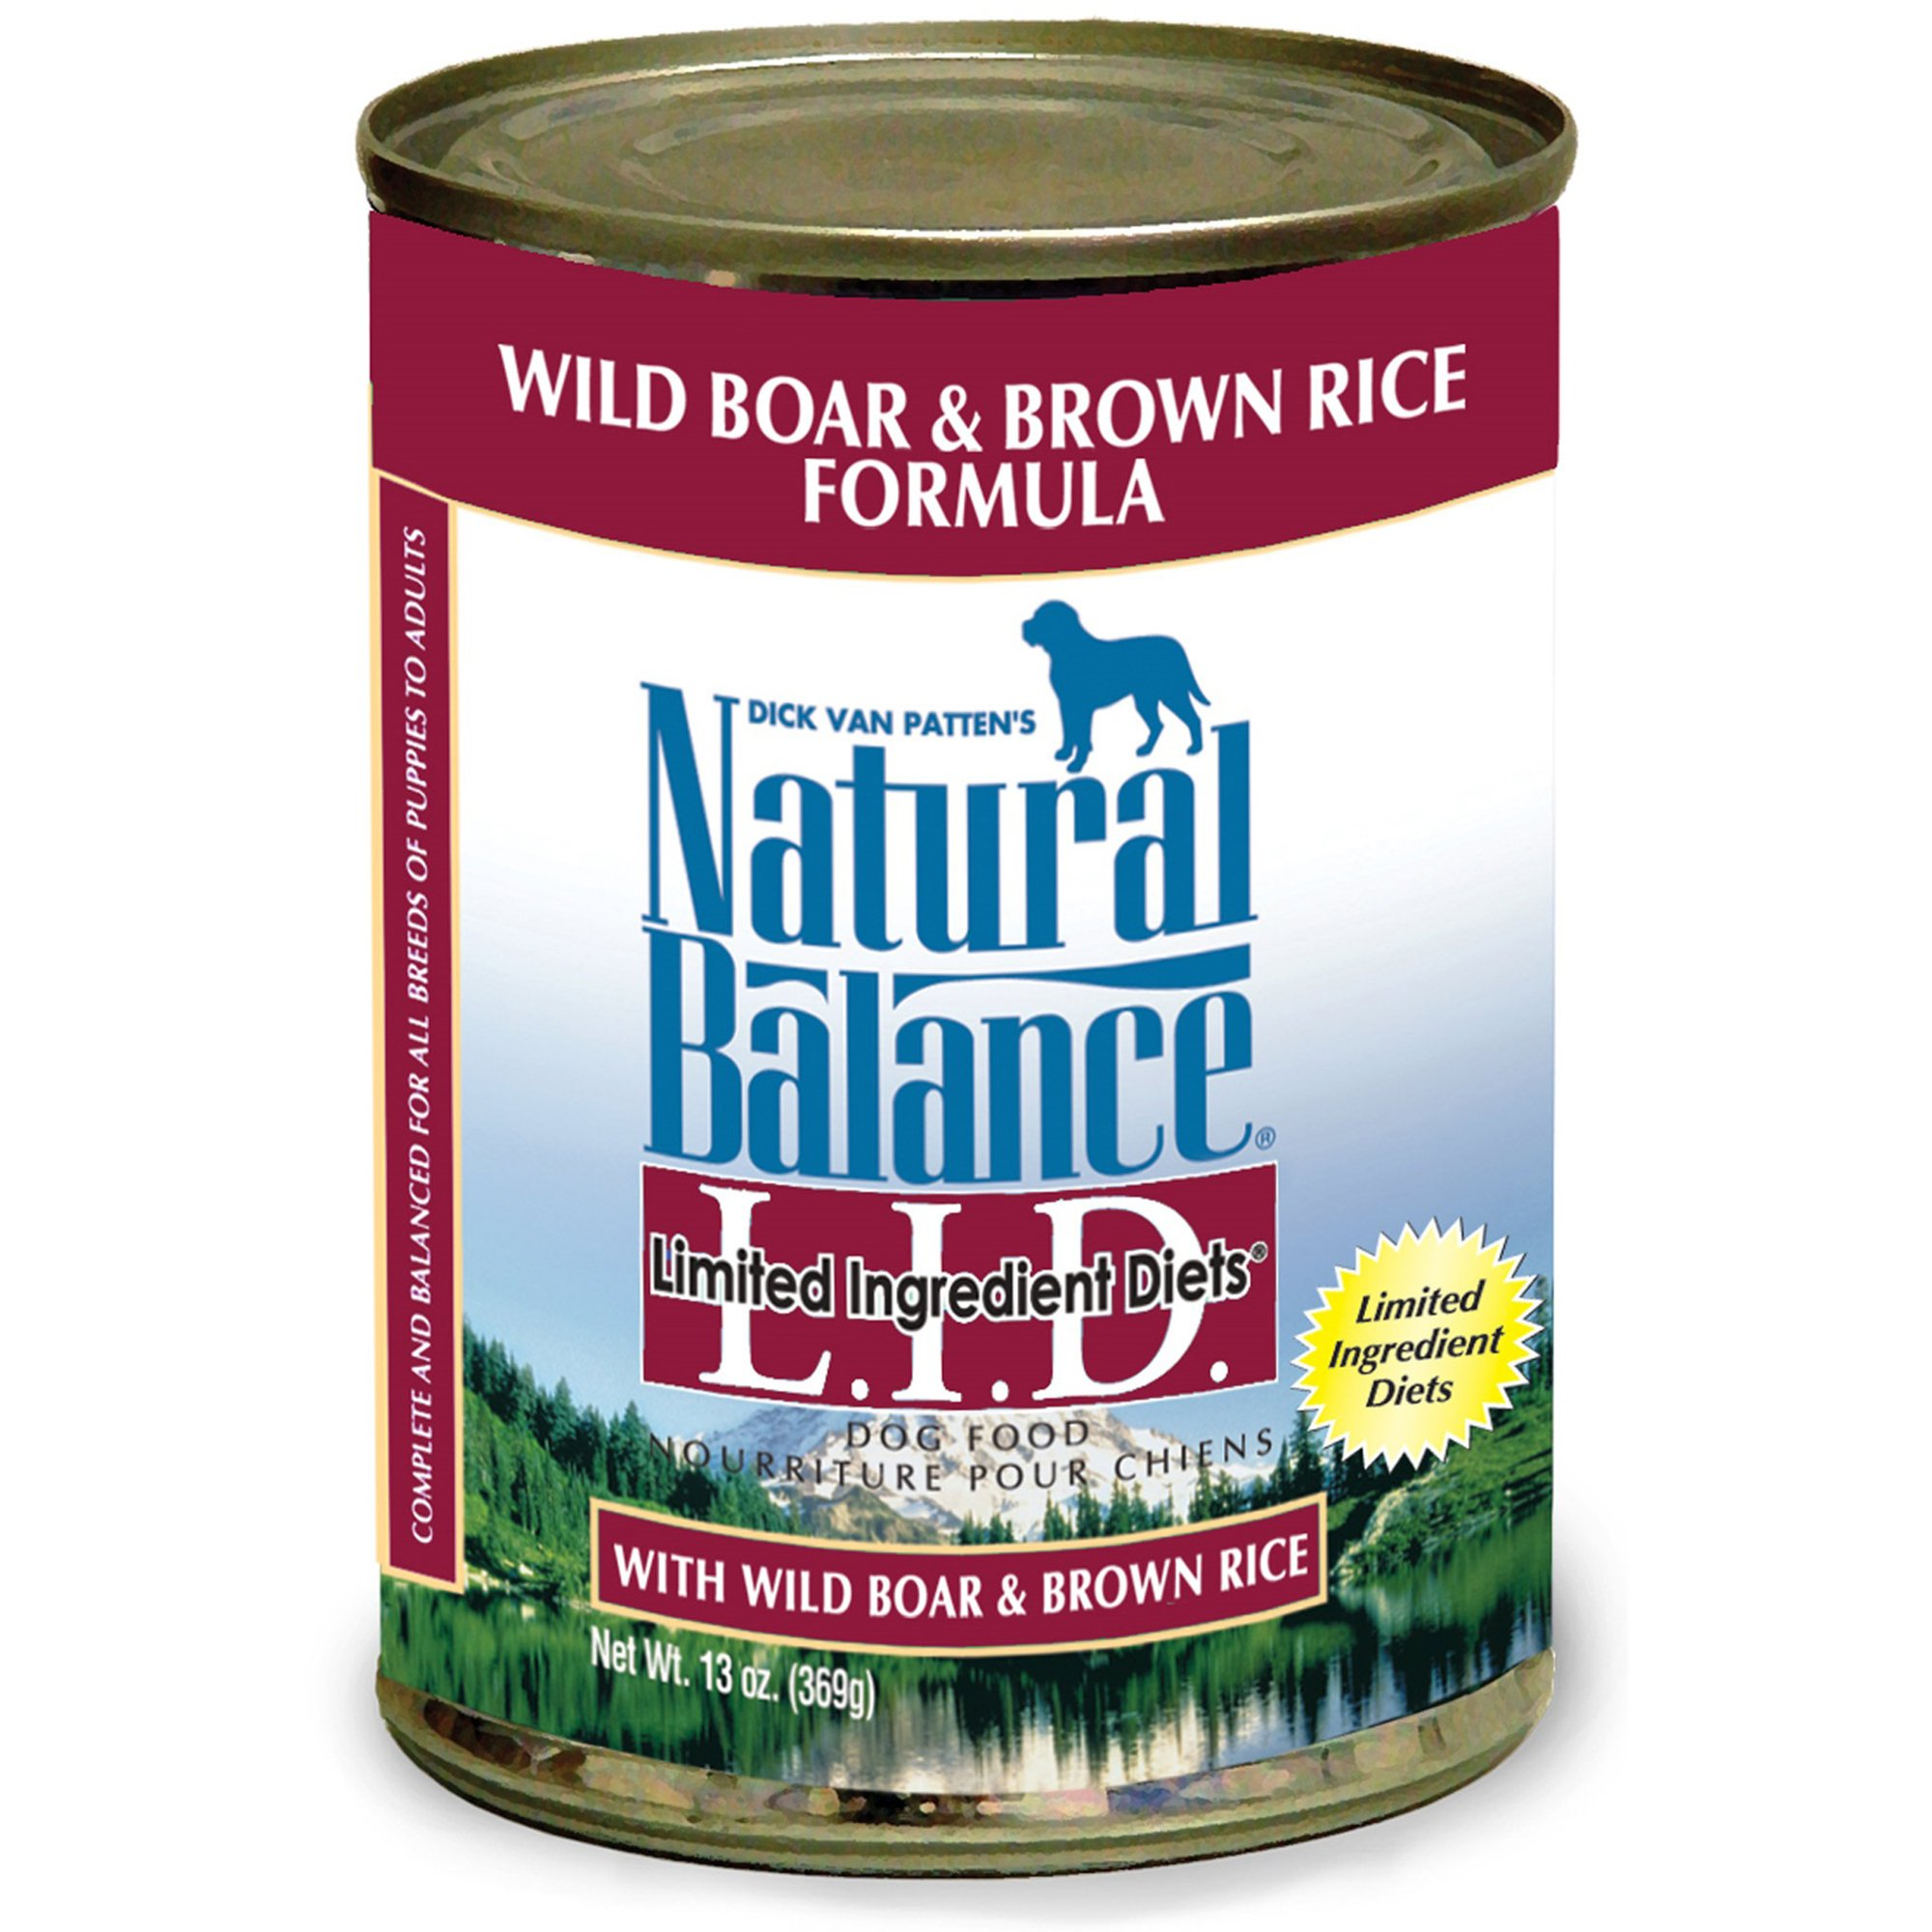 Natural Balance Limited Ingredient Diets Wild Boar & Brown Rice Formula Canned Dog Food